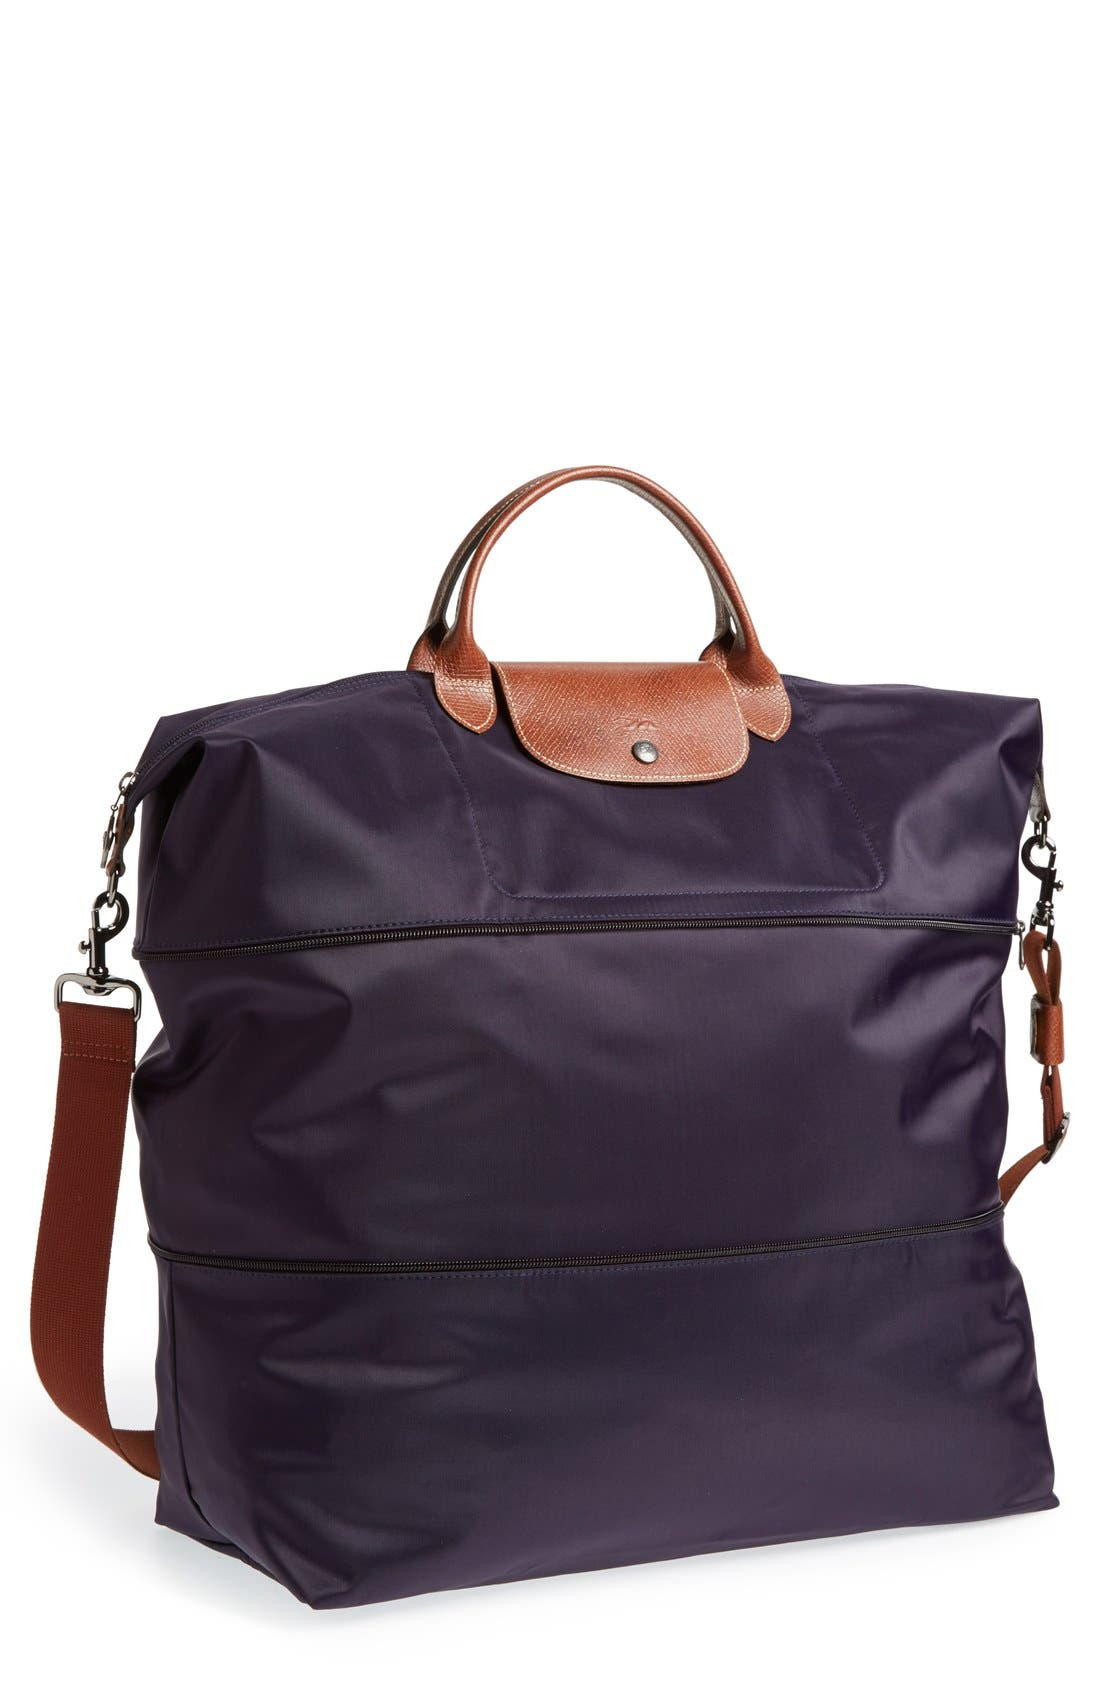 Longchamp 'Le Pliage' Expandable Travel Bag (21 Inch)